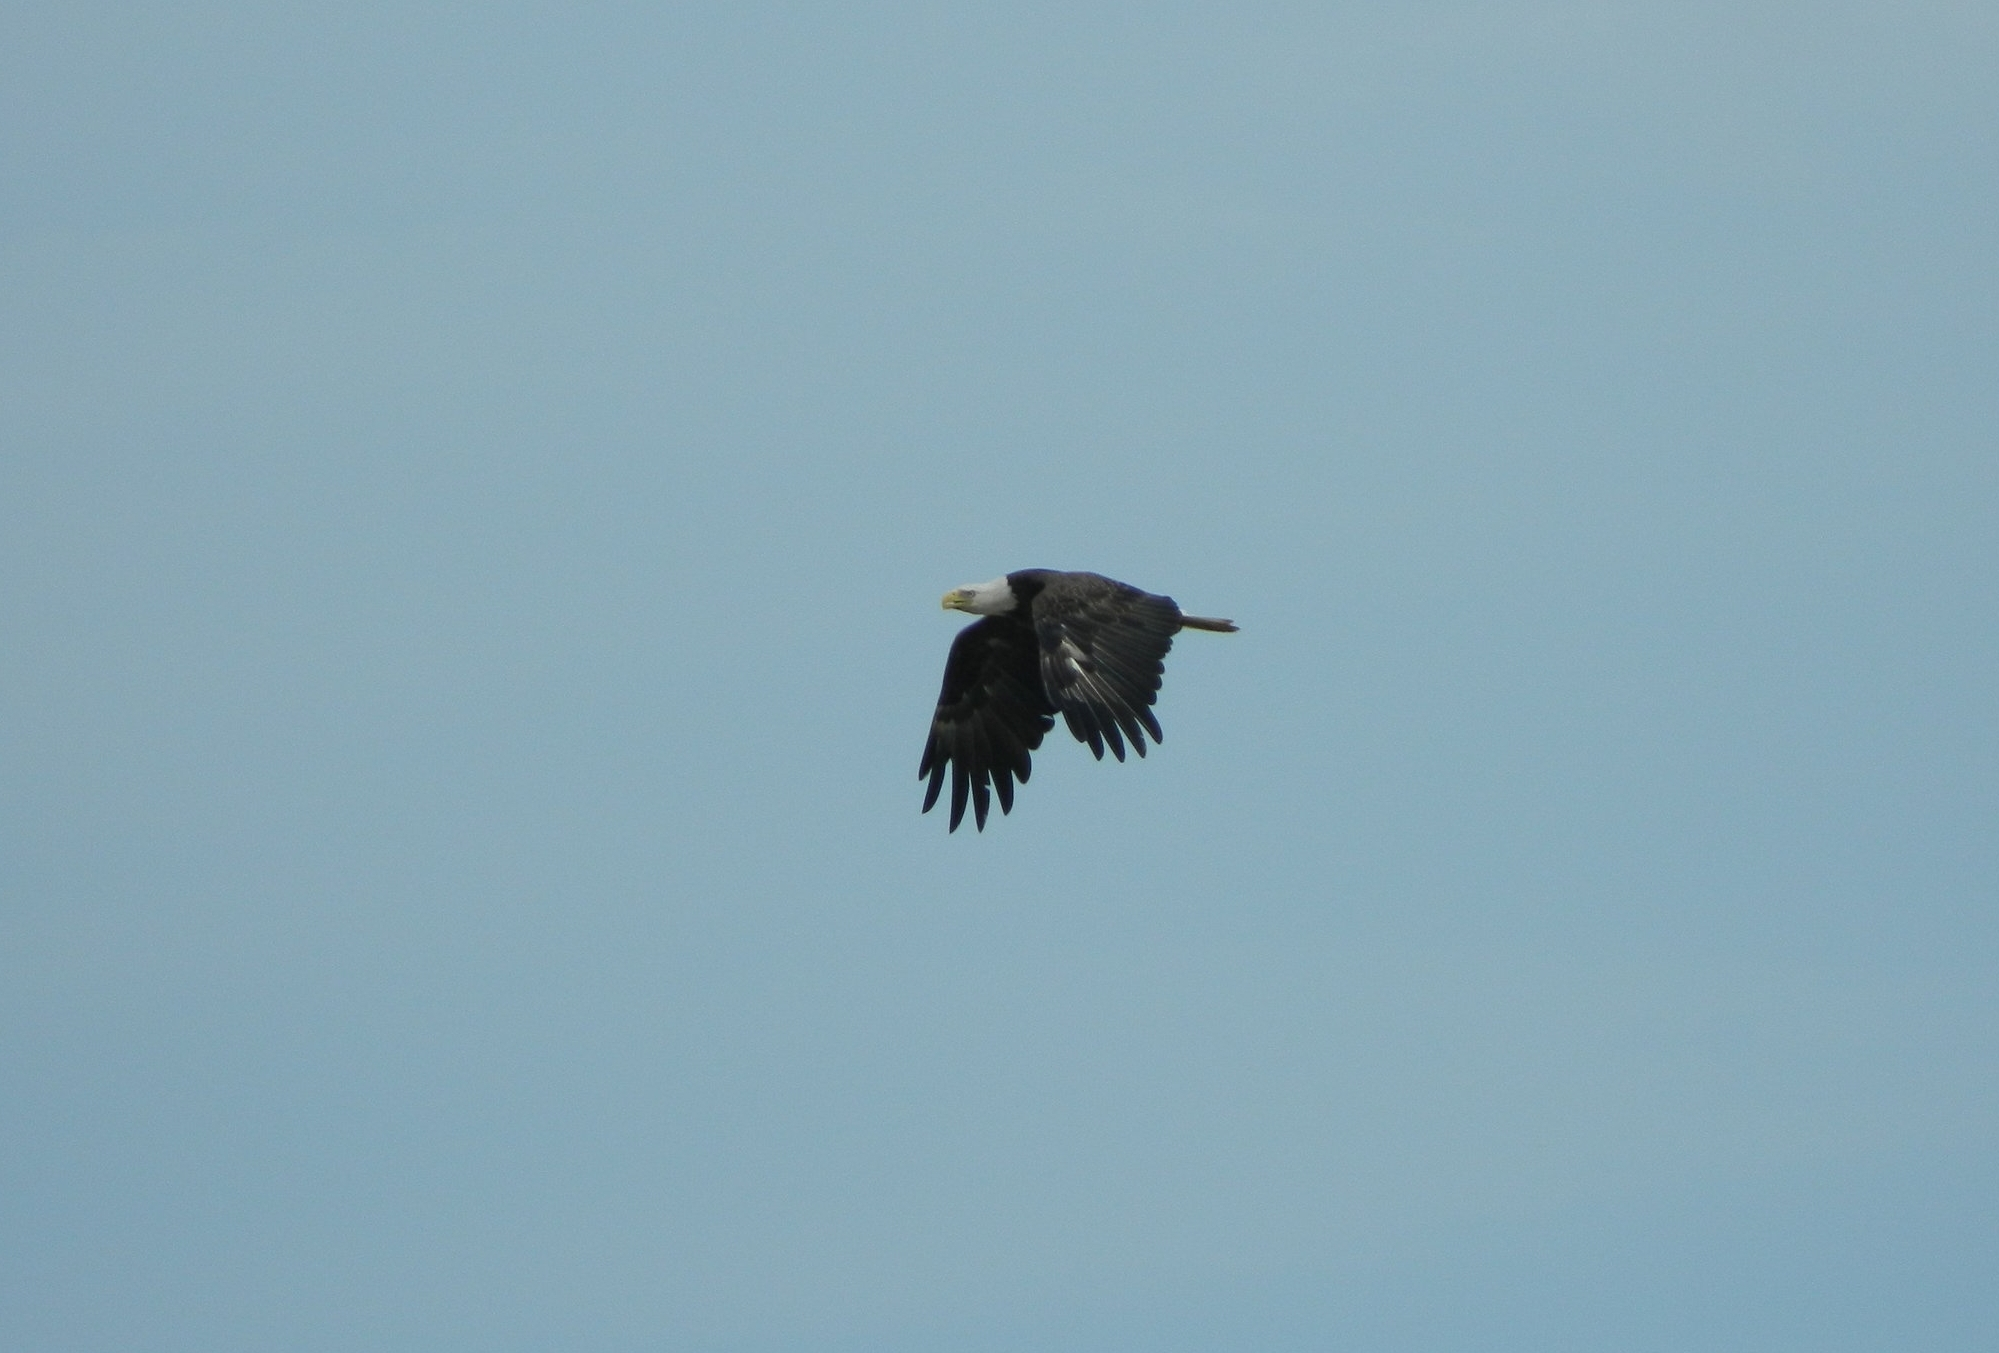 I nearly broke my ankle trying to get this shot of a bald eagle flying over the Bay.